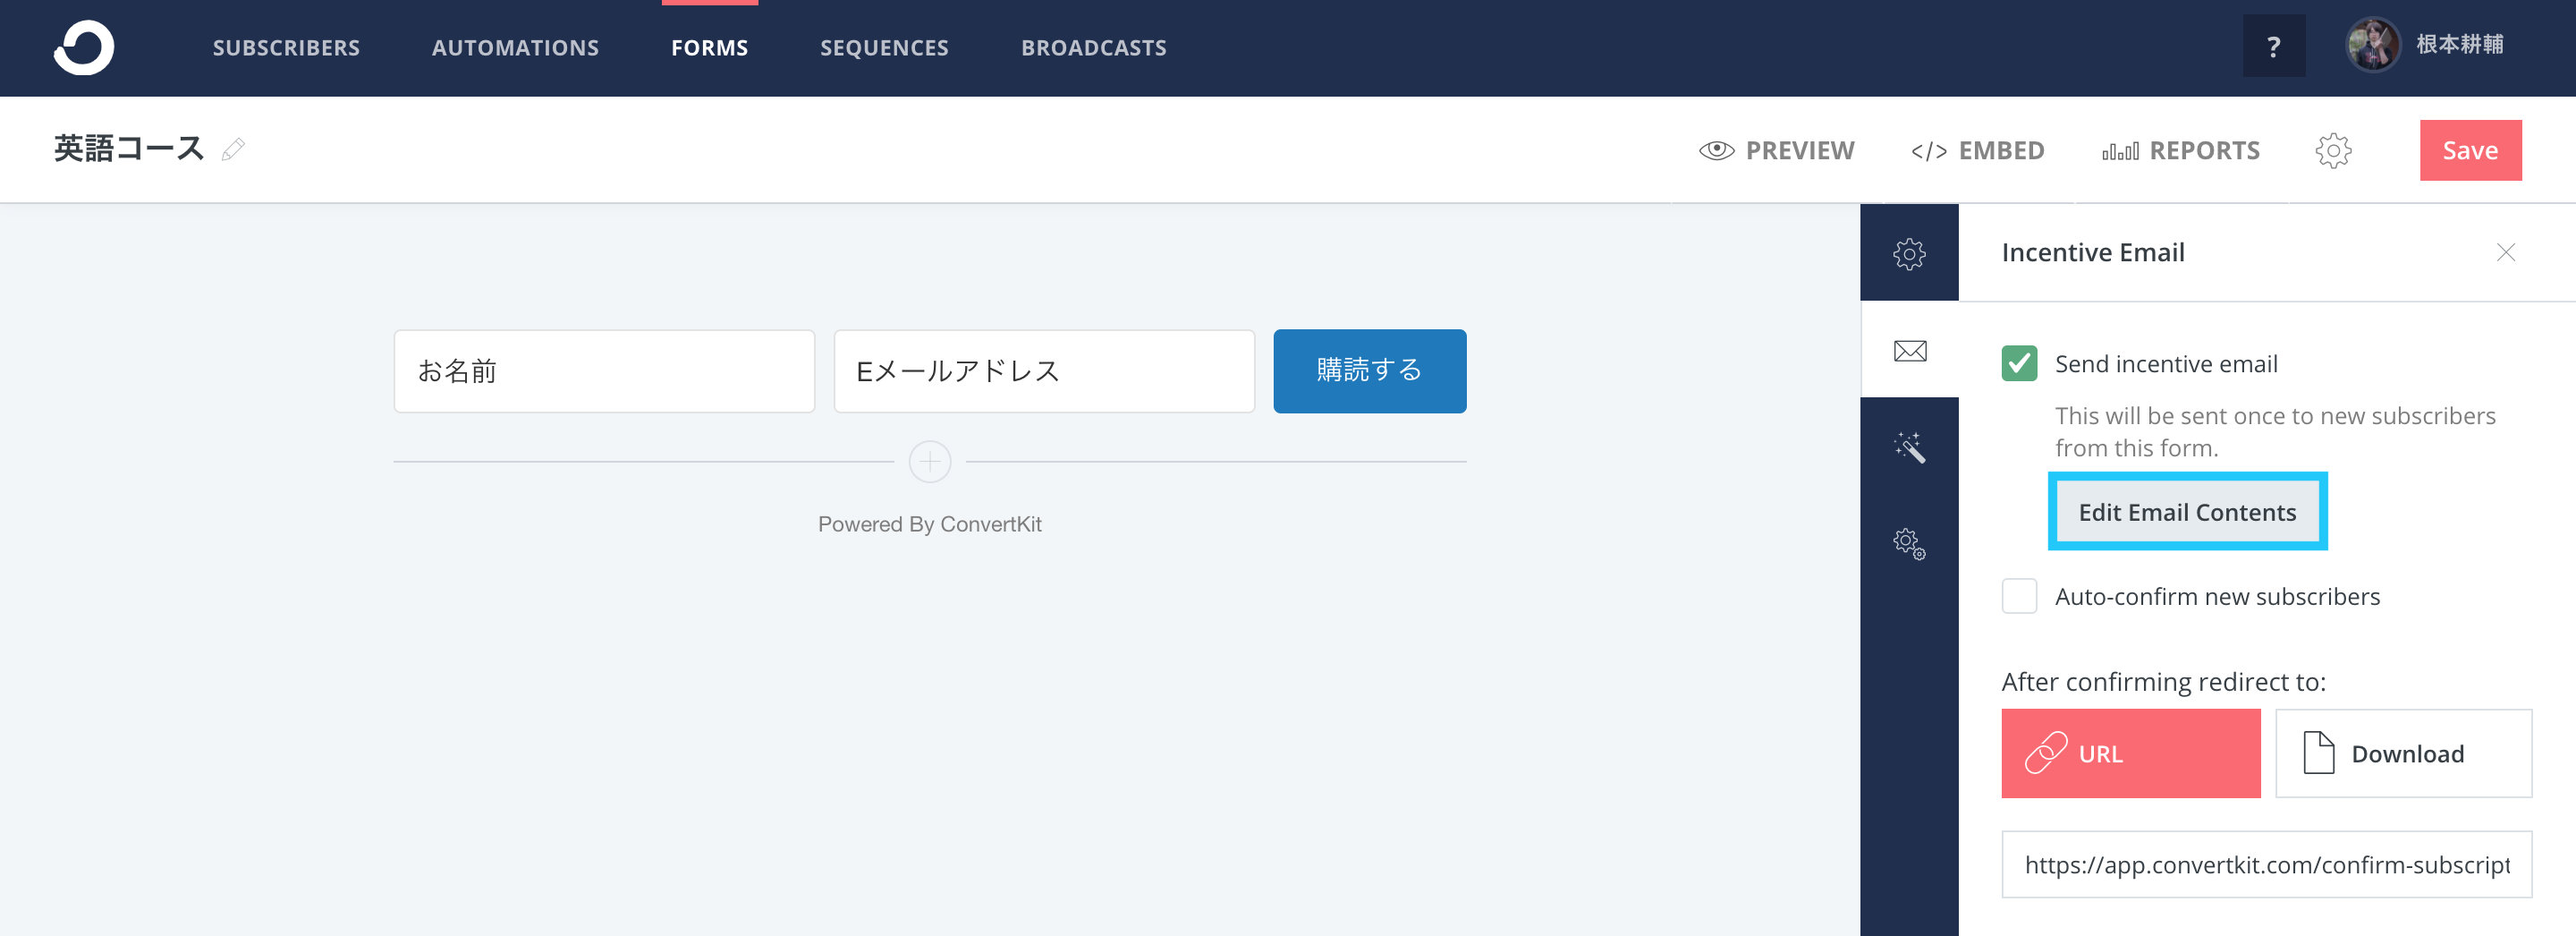 ConvertKitでEdit Email Contentsをクリックする